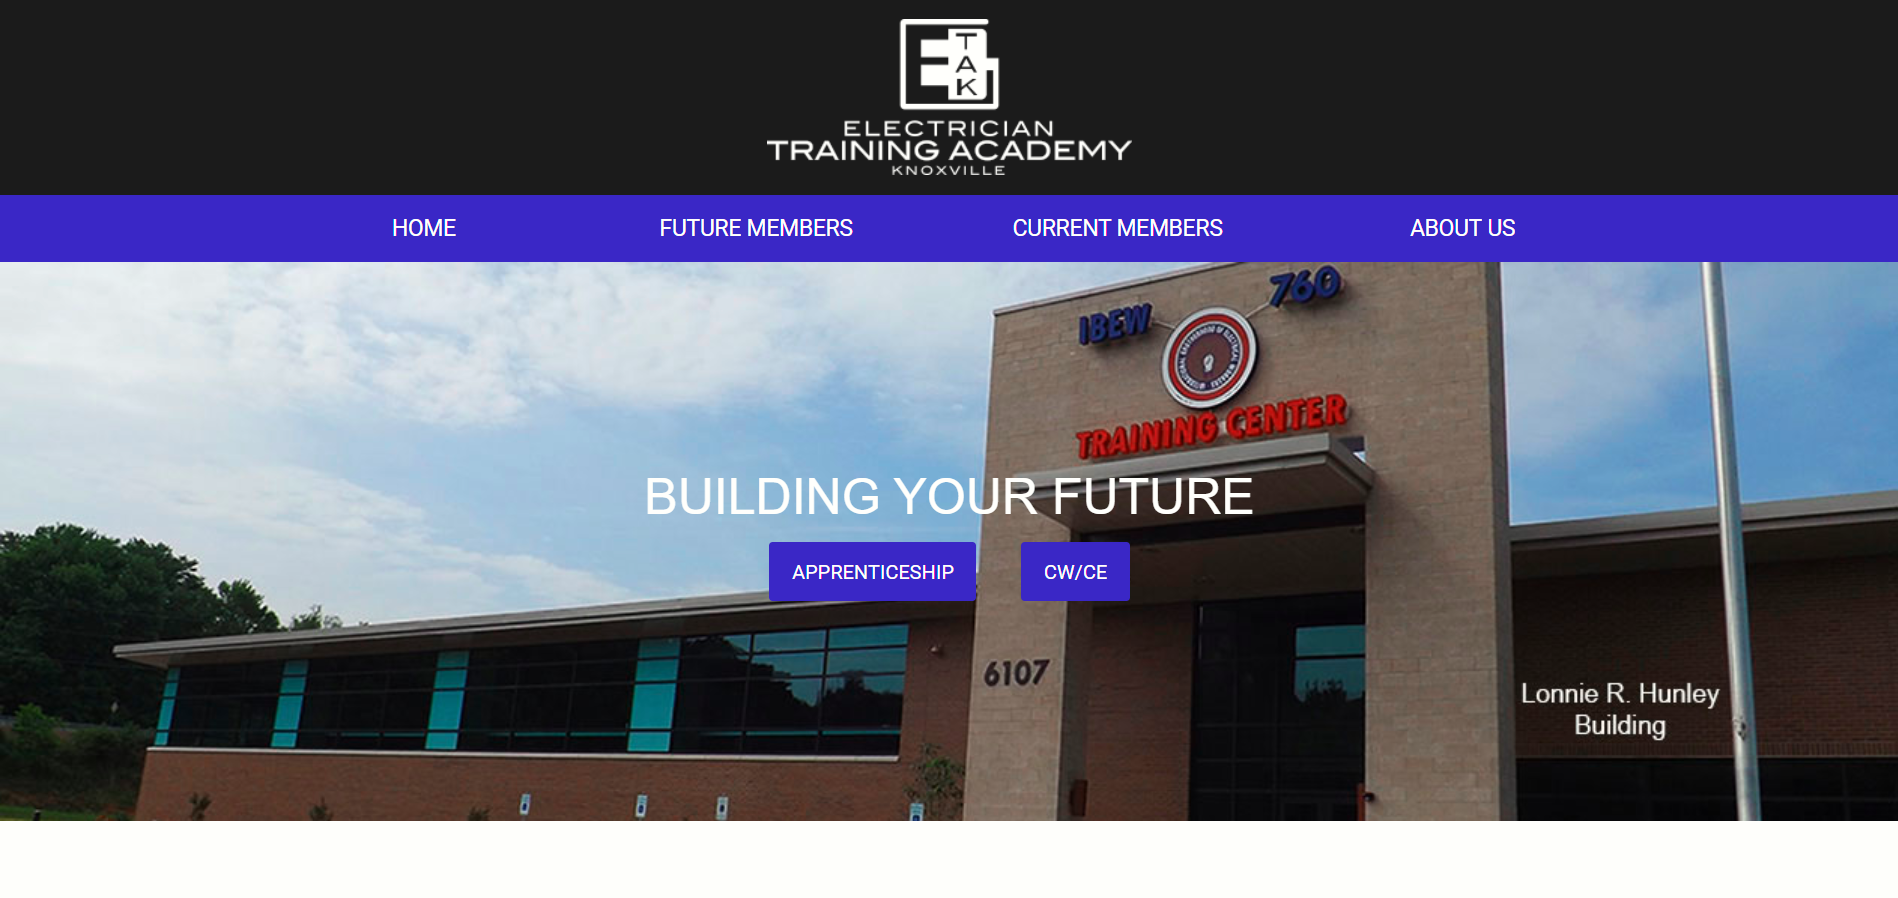 electrician training academy knoxville etak